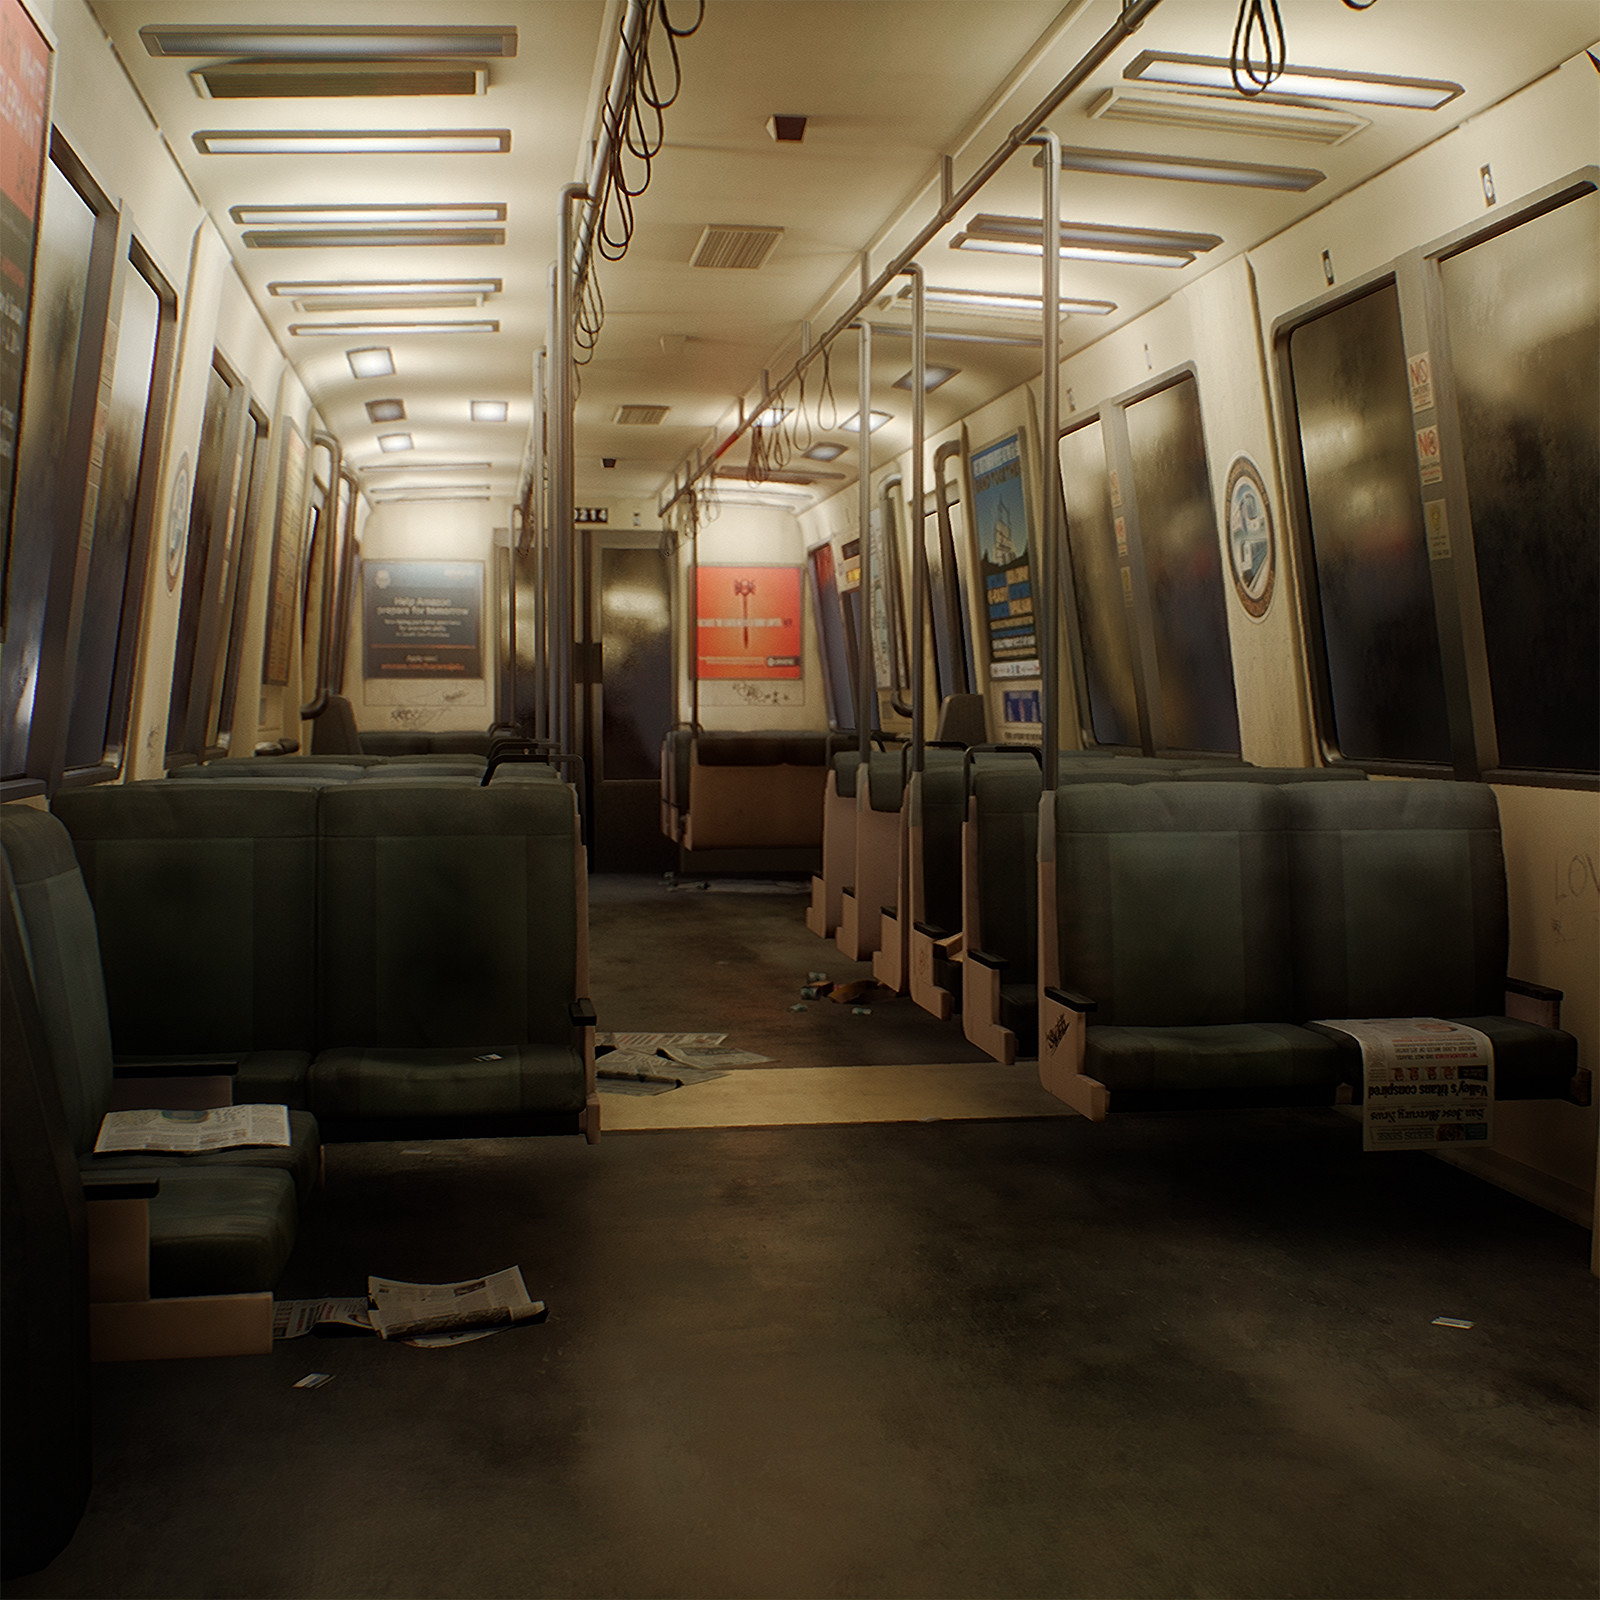 [UE4] BART Train Car